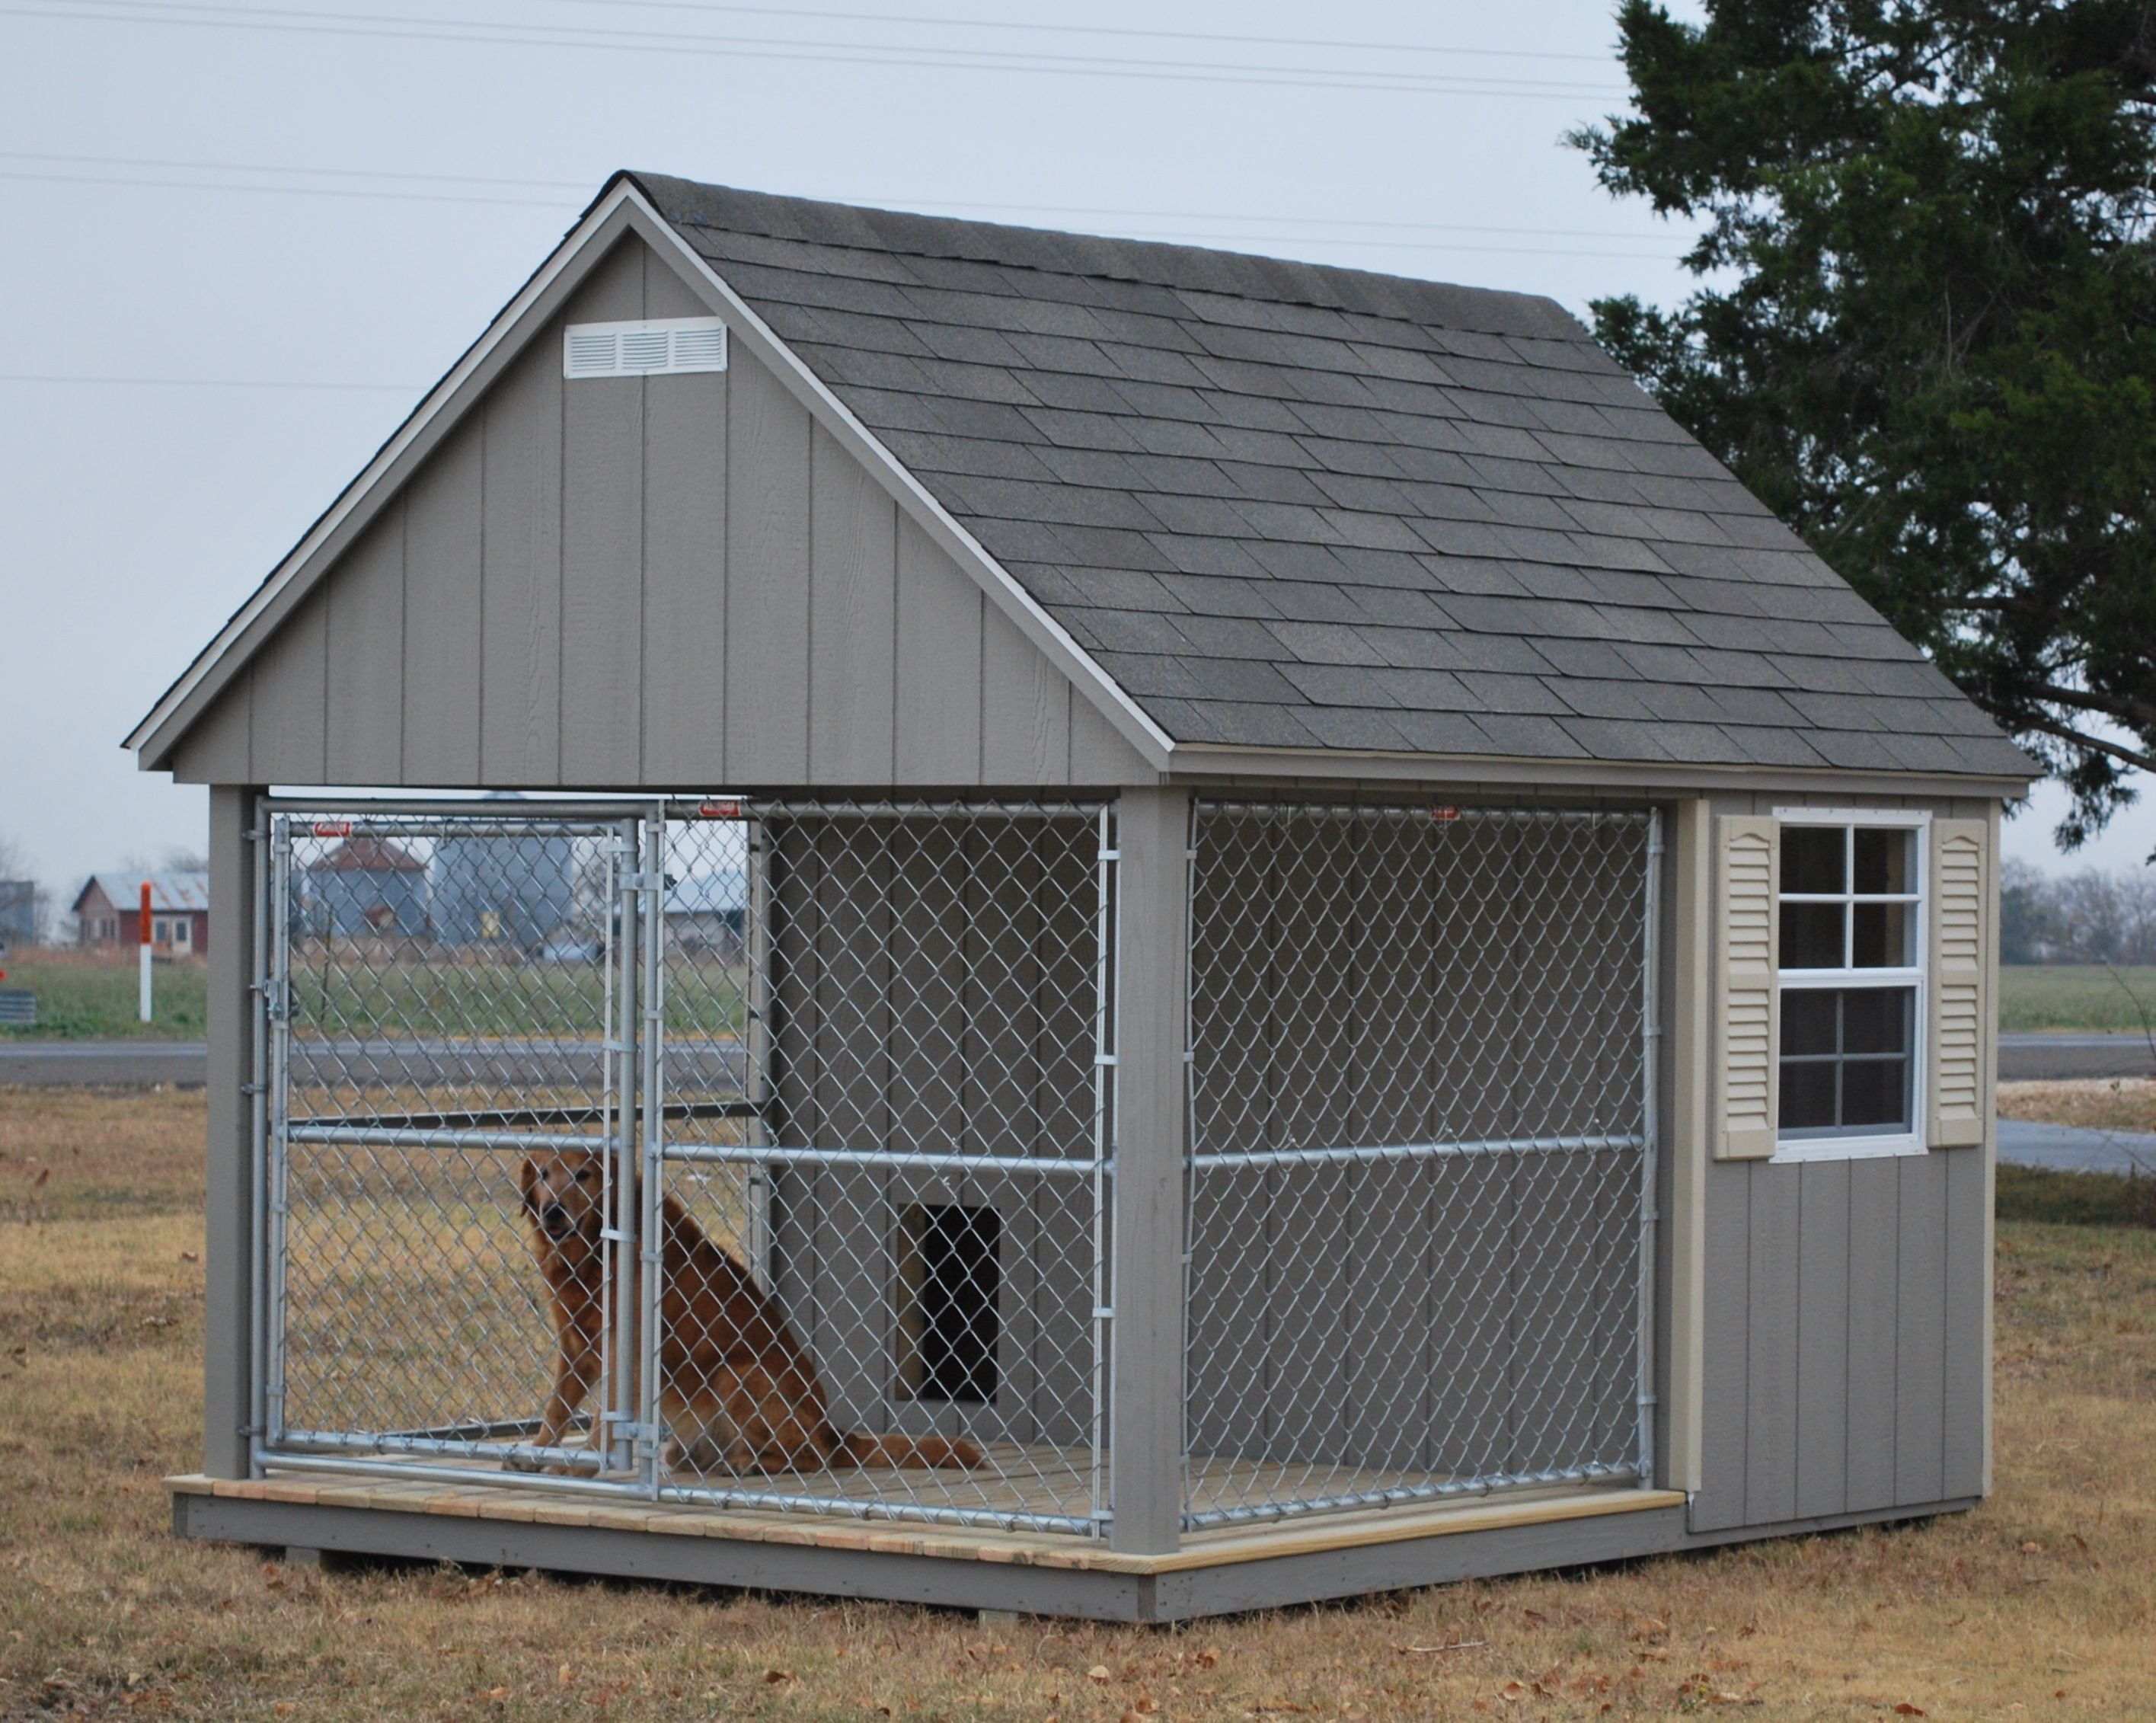 Affordable Dog Kennels For Sale In Texas Outdoor Dog Dog Kennels For Sale Dog Kennel Outdoor